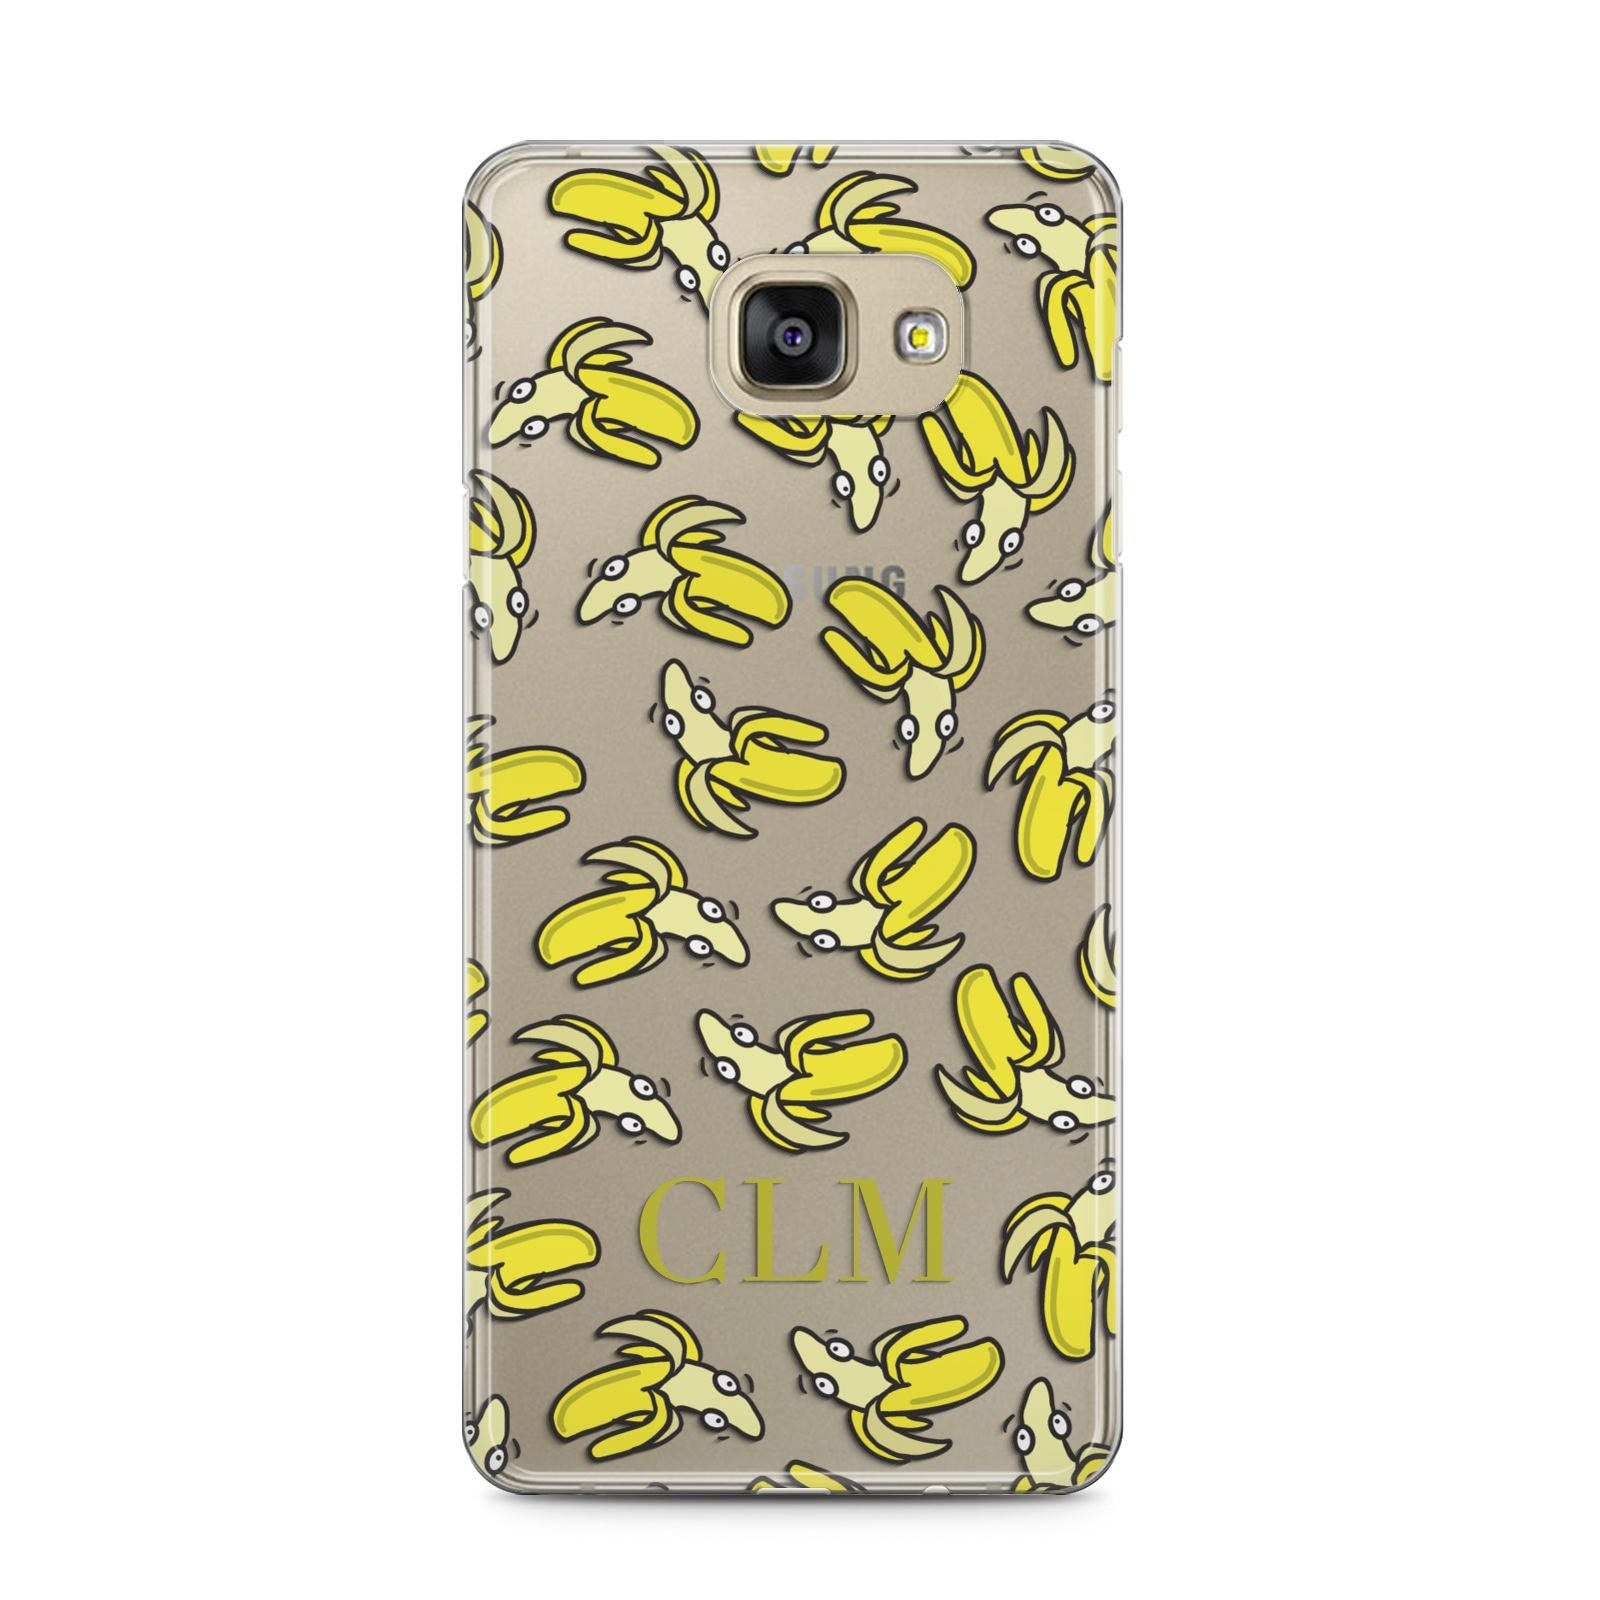 Personalised Banana Initials Clear Samsung Galaxy A5 2016 Case on gold phone